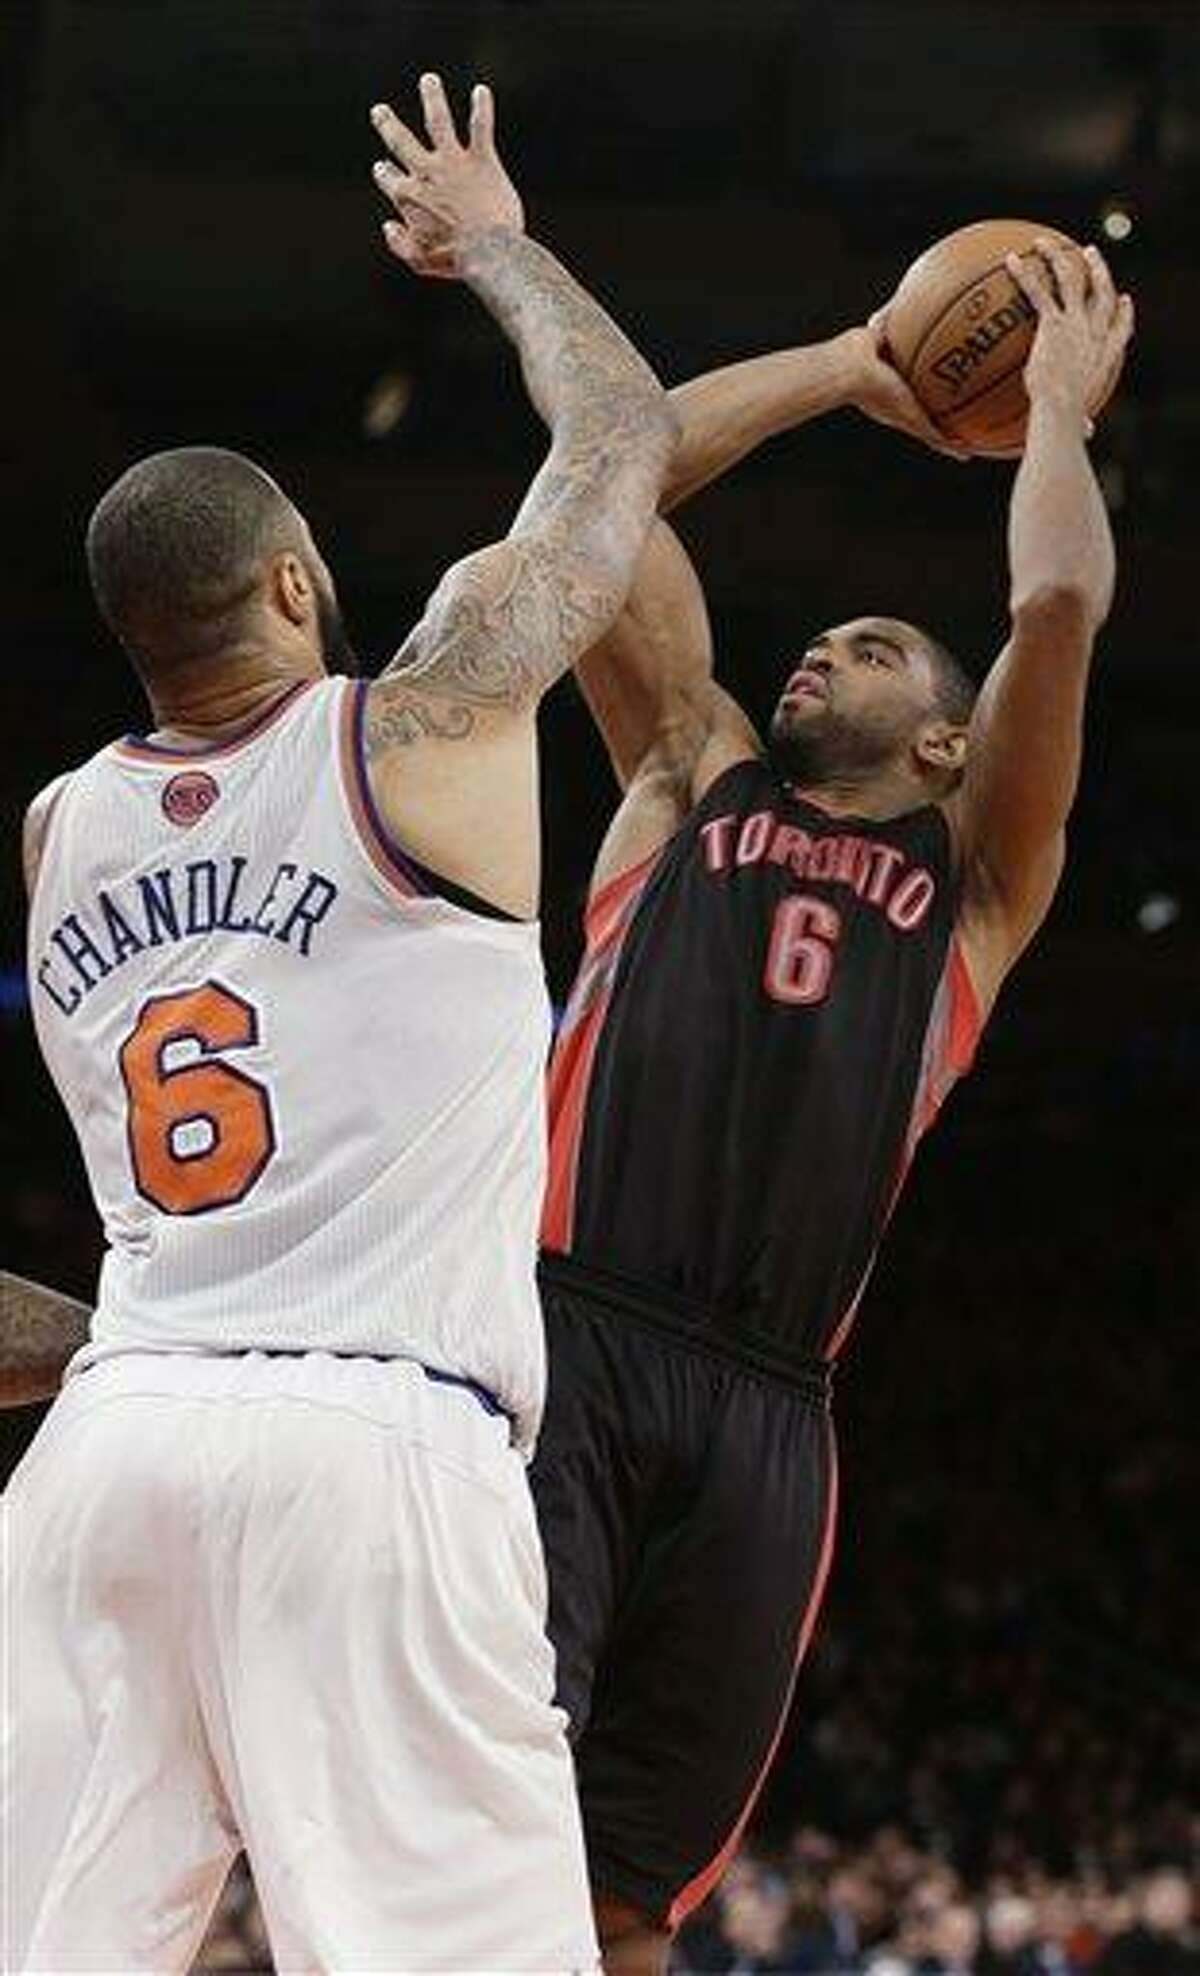 Toronto Raptors' Alan Anderson (6) shoots over New York Knicks' Tyson Chandler (6) during the second half of an NBA basketball game Wednesday, Feb. 13, 2013, in New York. Anderson scored 26 points as the Raptors won 92-88. (AP Photo/Frank Franklin II)